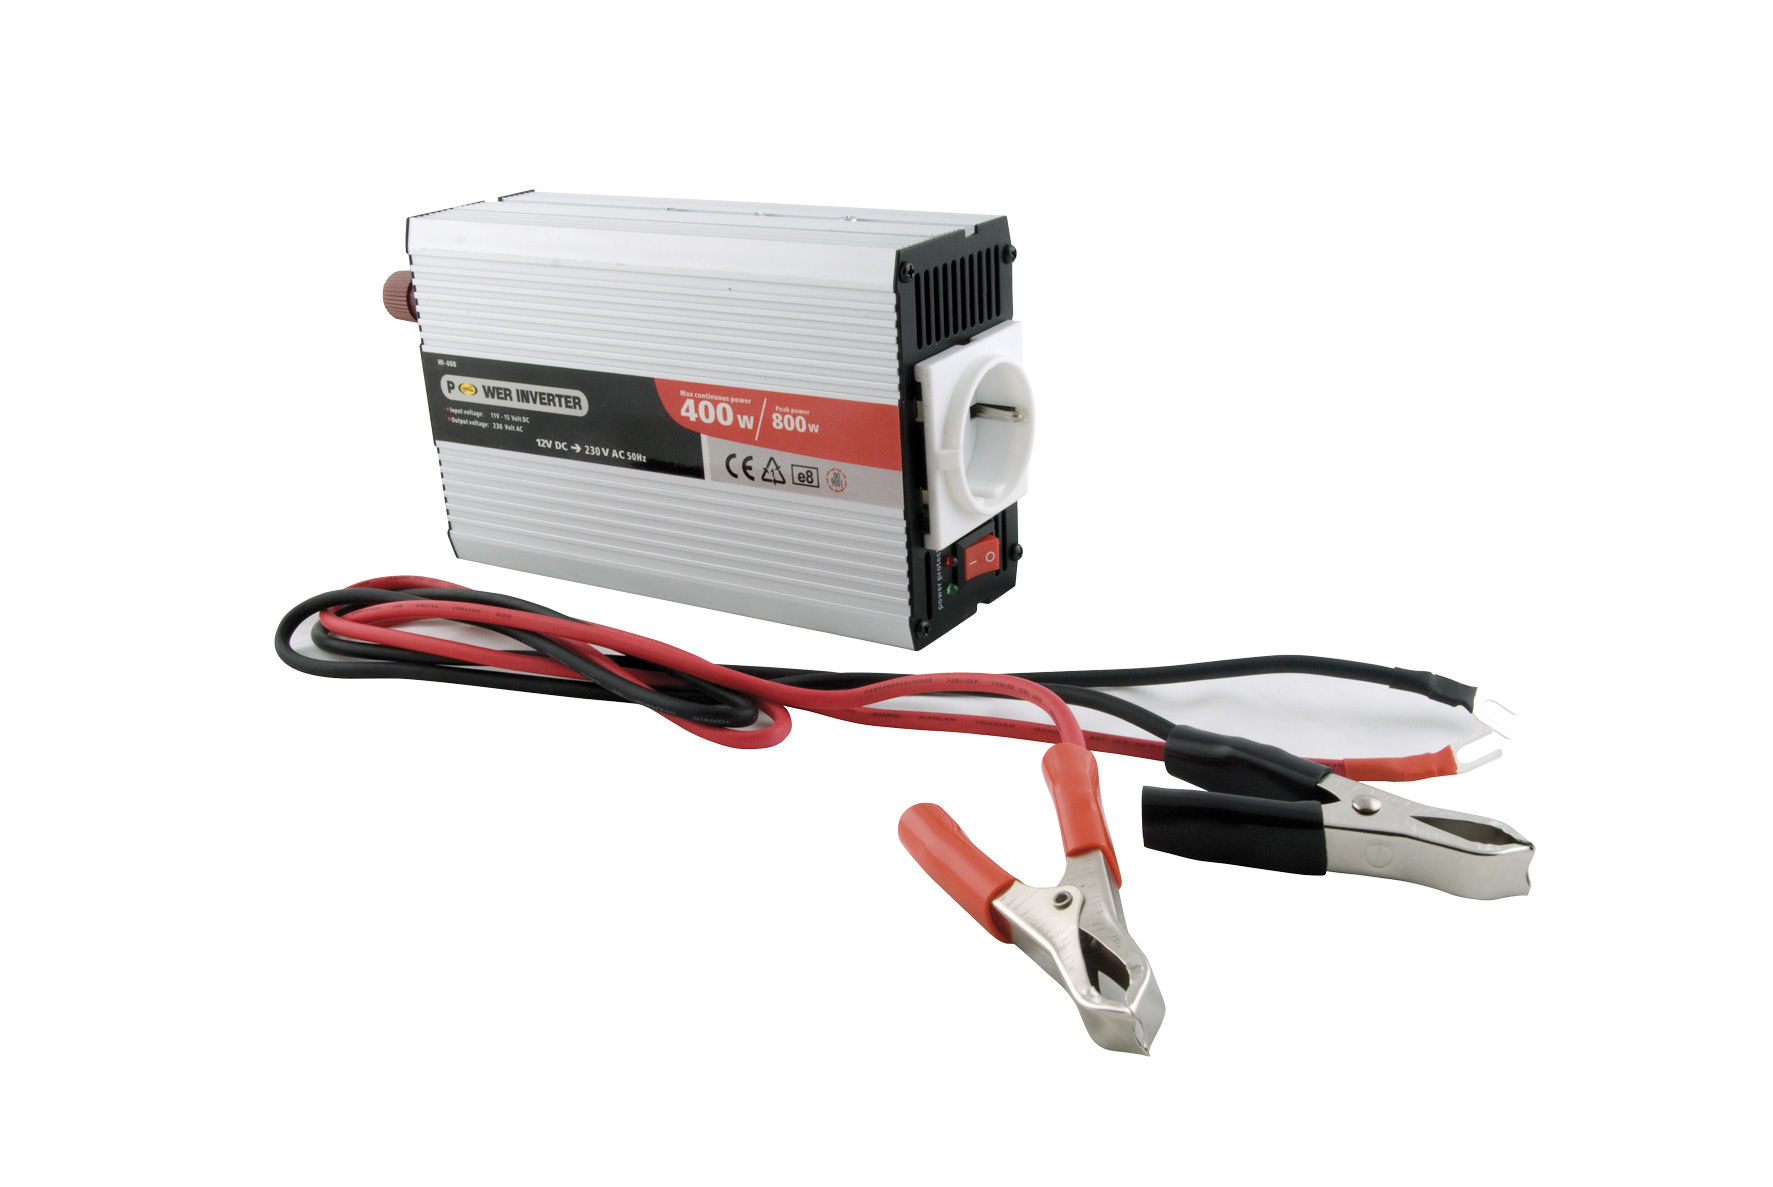 Imagen de transformador power inverter 300w usb pwi8307